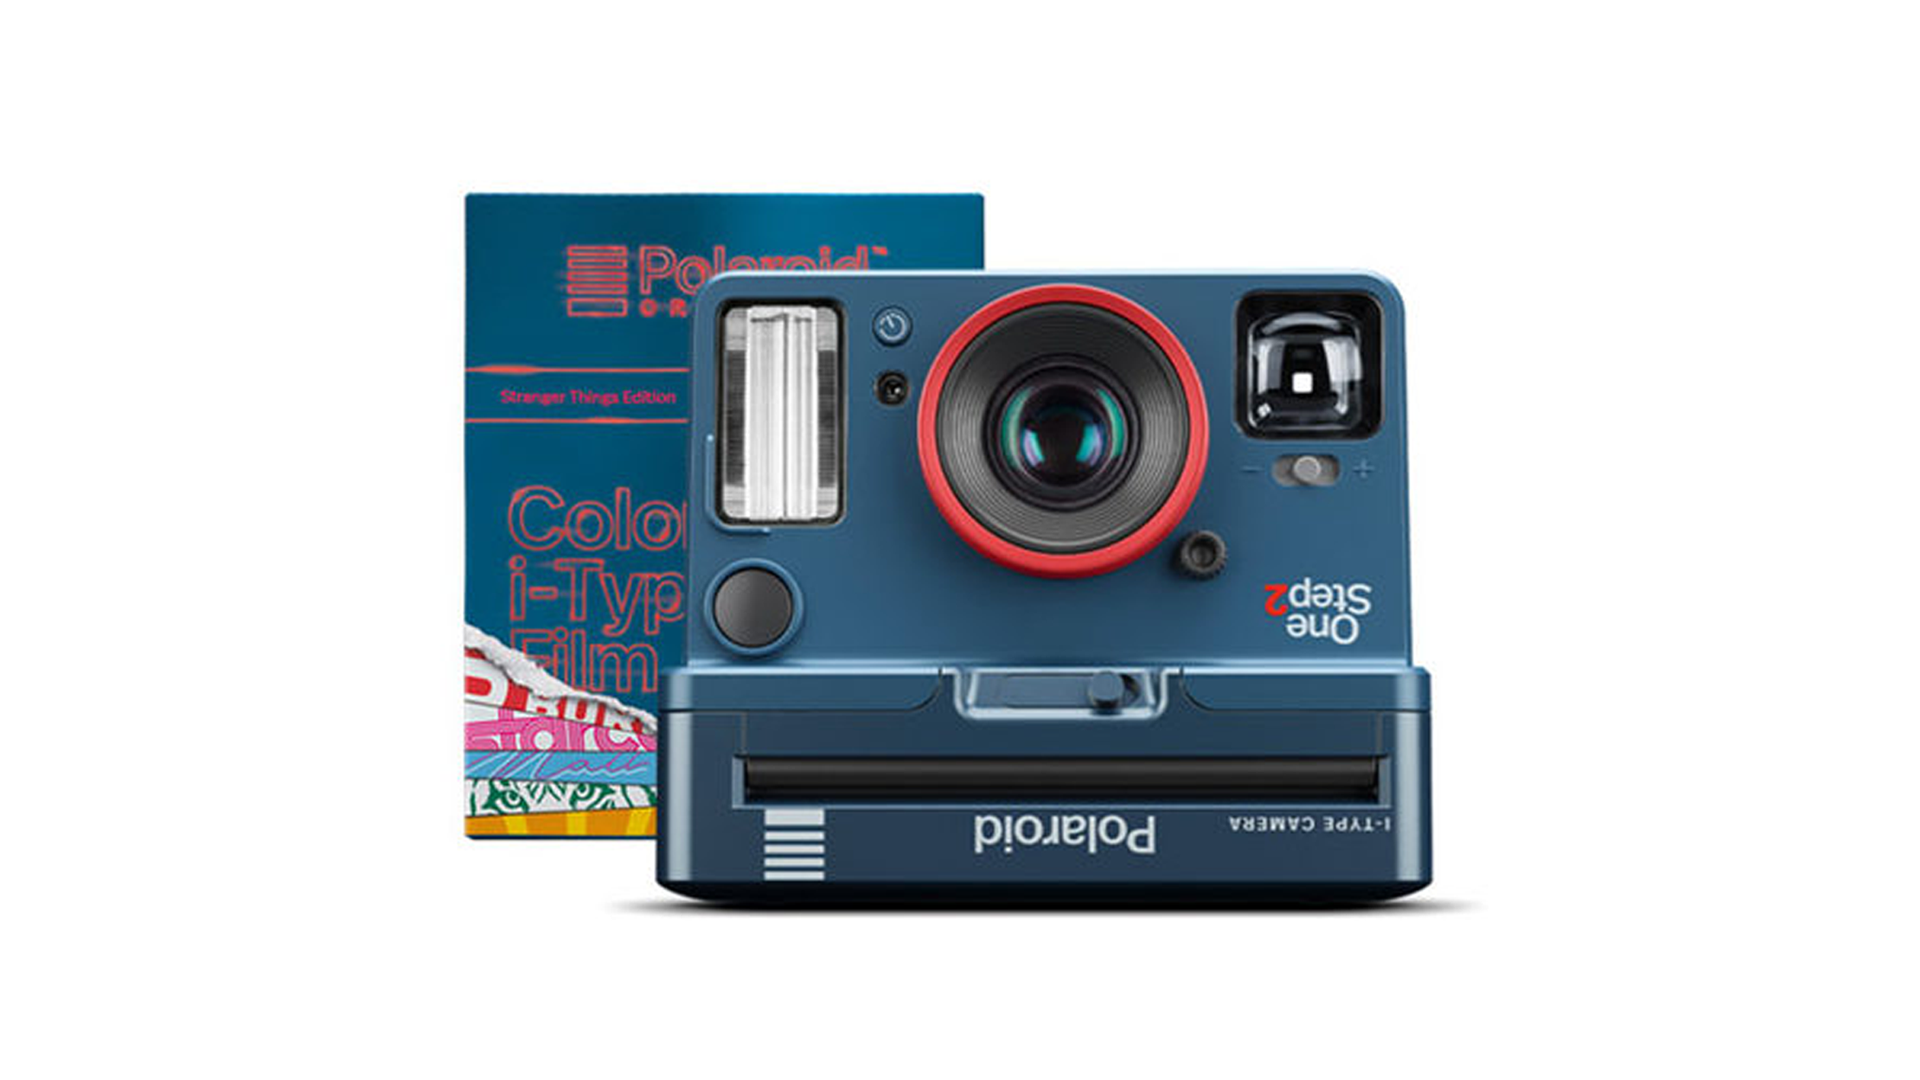 A Polaroid OneStep 2 Camera that is design-inspired by Stranger Things